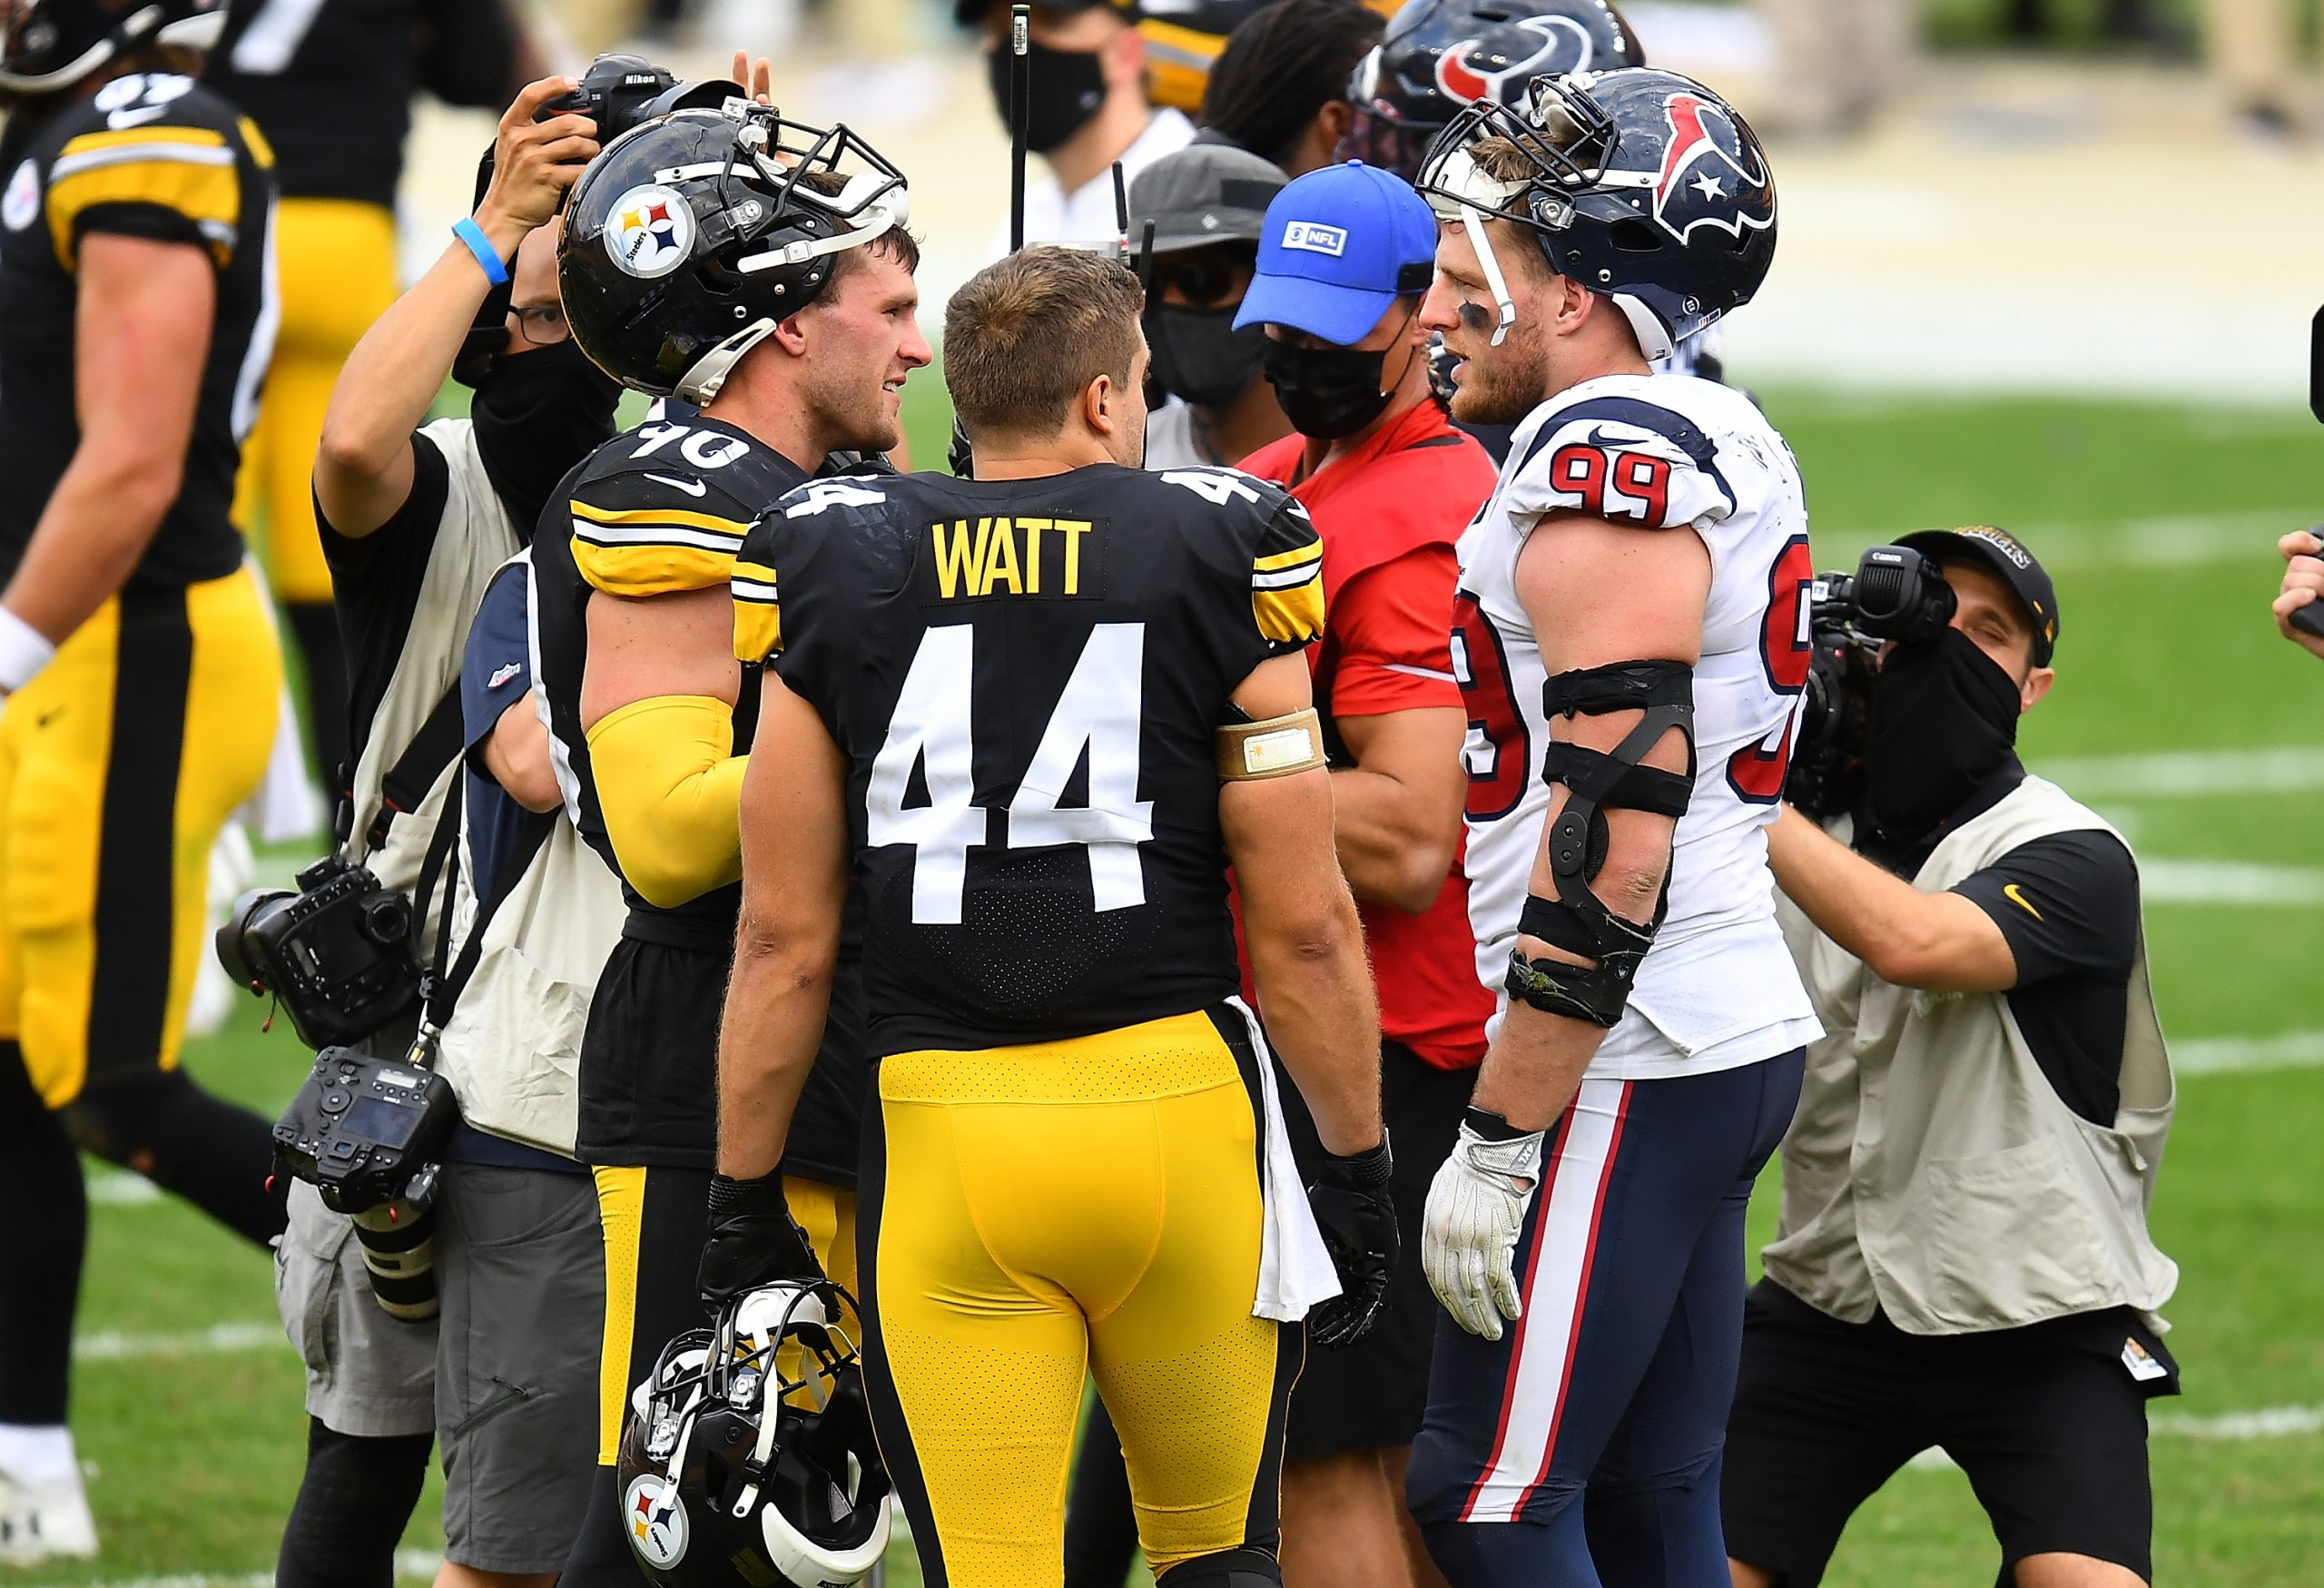 Watt Brothers at an NFL game